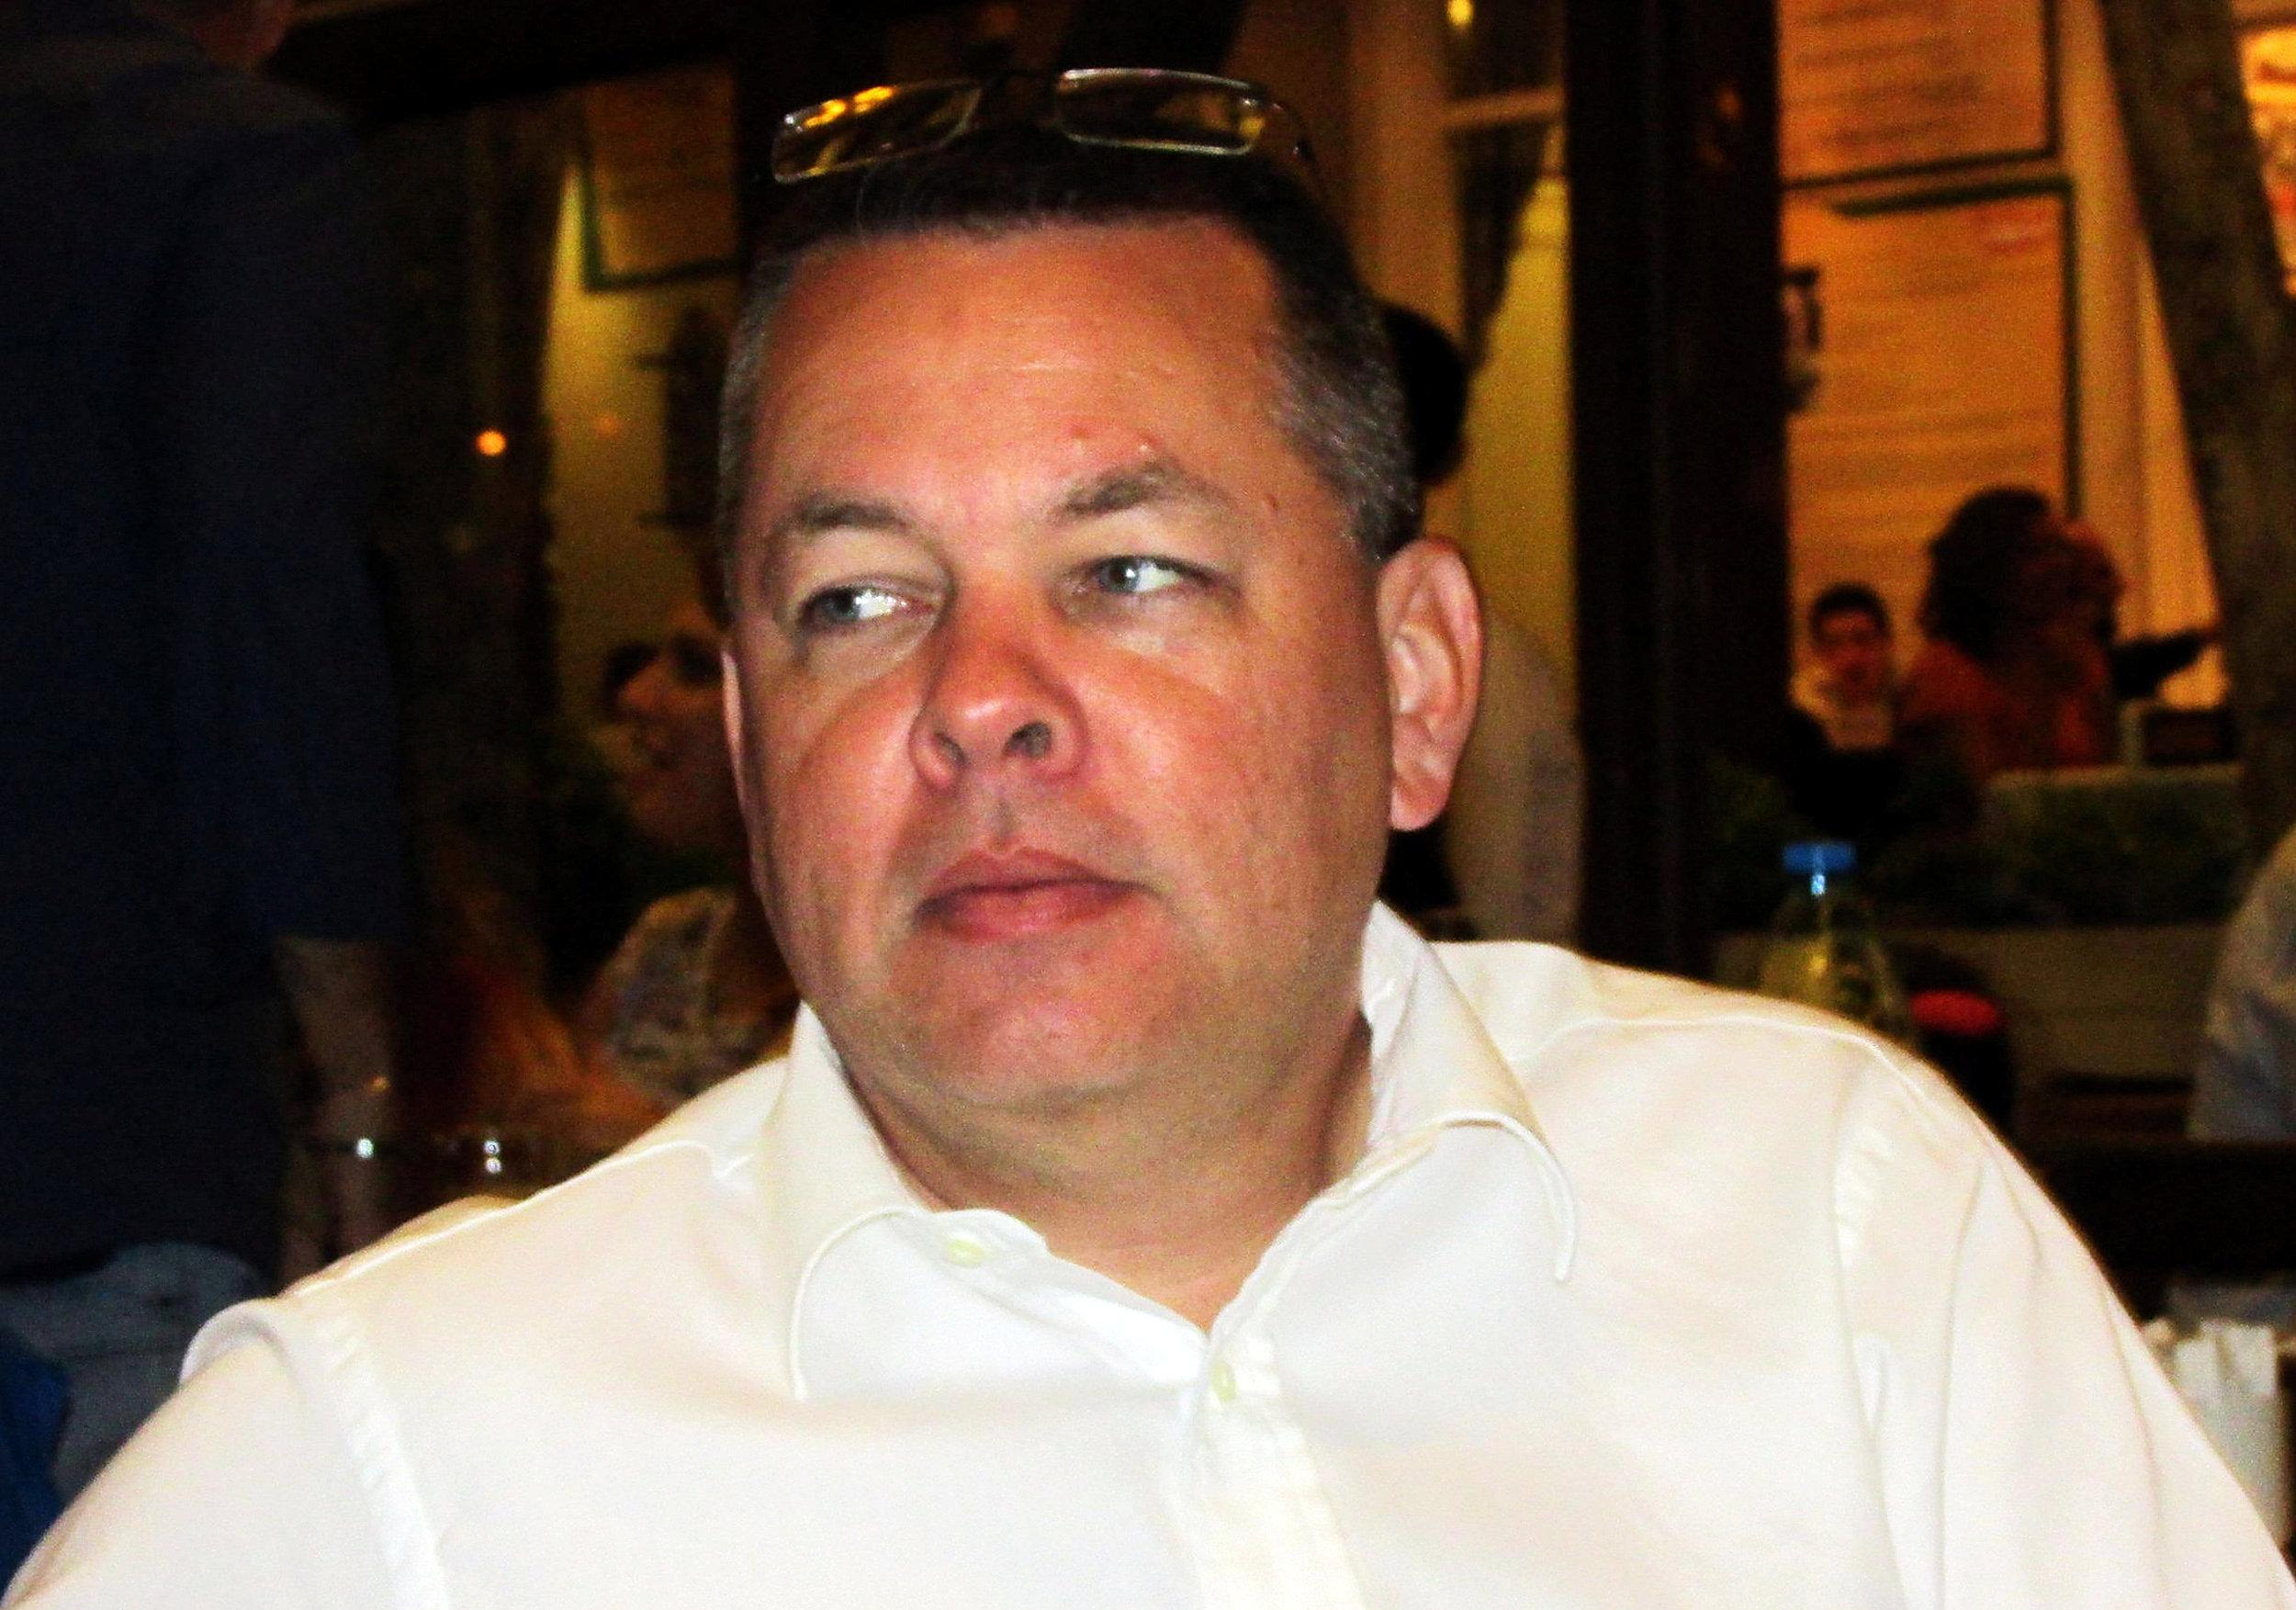 Andrew Brunson, a Christian pastor from North Carolina, U.S. who has been in jail in Turkey since December 2016, is seen in this undated picture taken in Izmir, Turkey. Depo Photos via